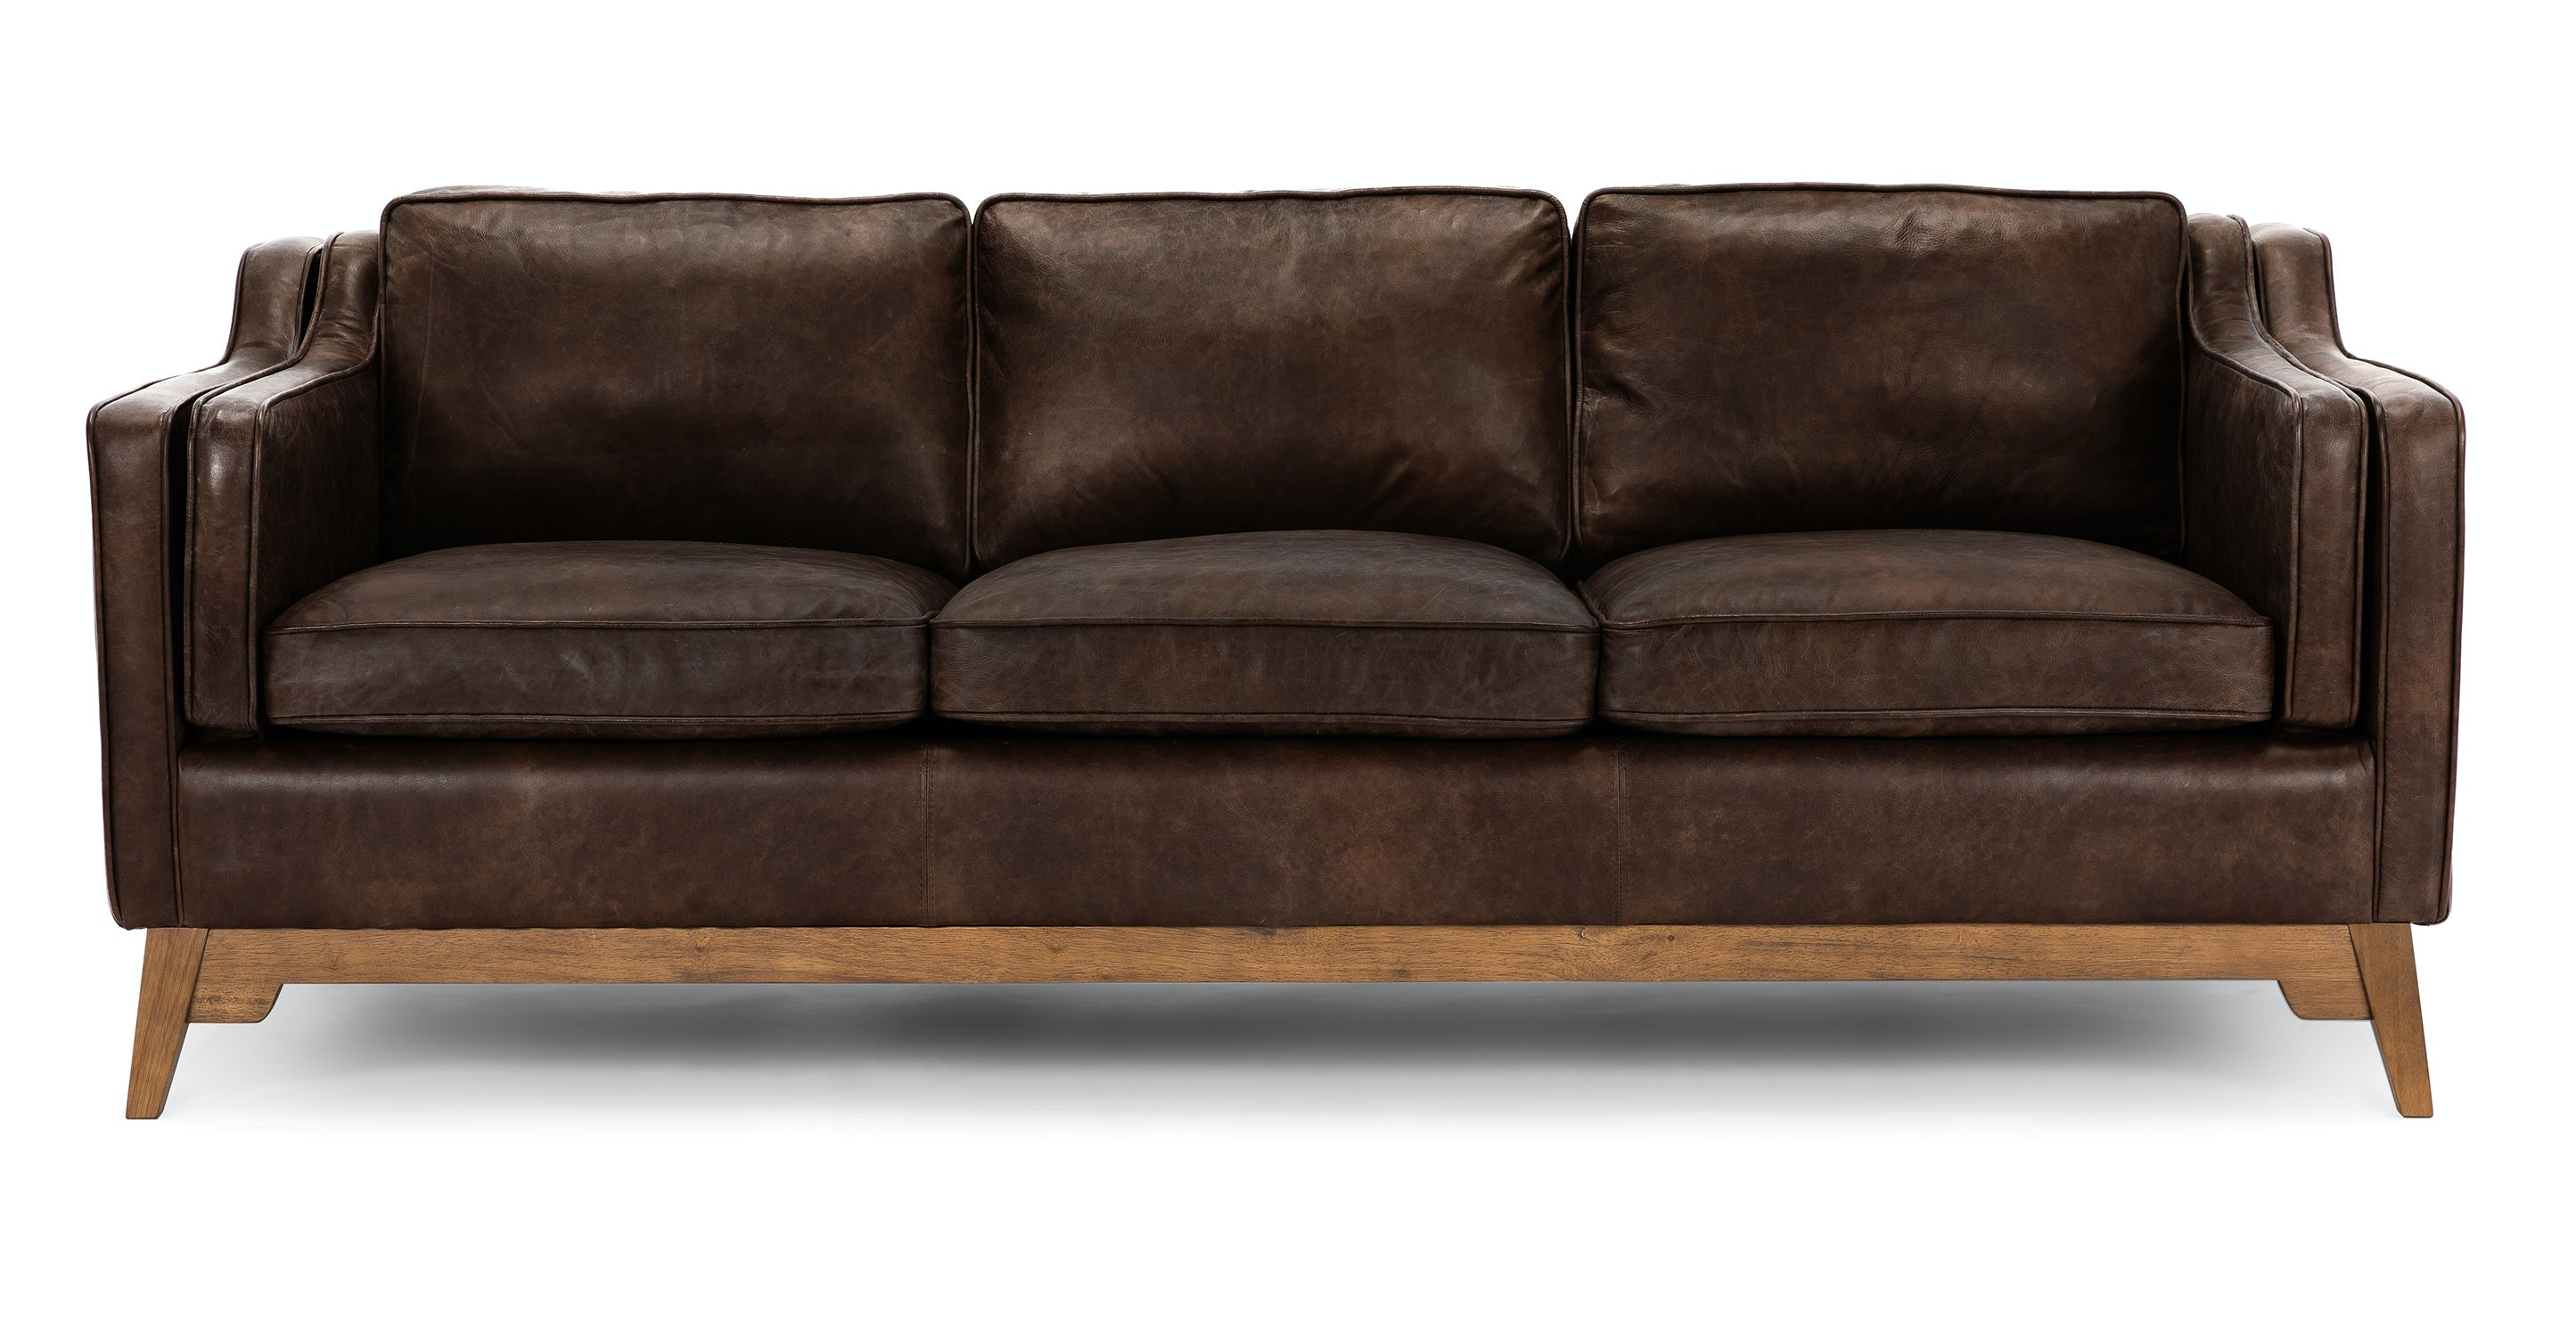 Worthington Oxford Brown Sofa   Sofas   Article | Modern, Mid Century And  Scandinavian Furniture